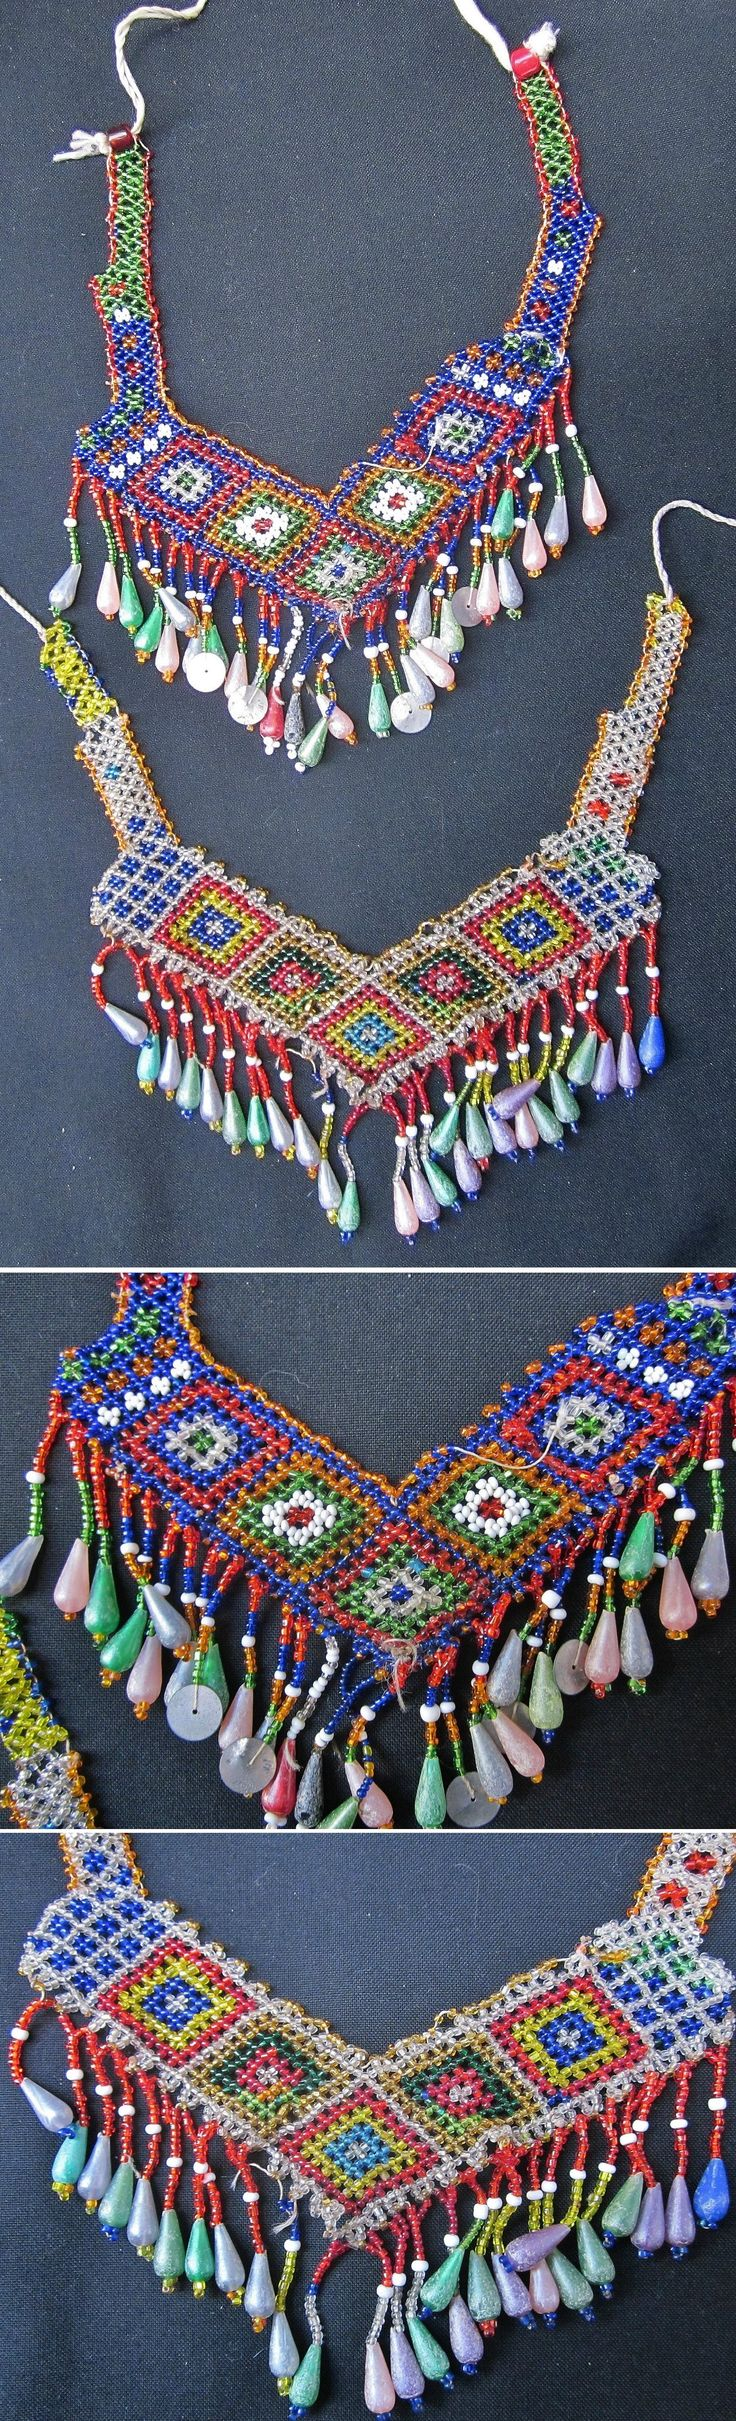 Two 'gerdanlık' (necklace, to be worn close to the neck). Part of the traditional festive woman's costume from Nebiköy (15 km NE of Tokat city). Beadwork, mid-20th century, bought from the village in 1989. (Kavak Folklor Ekibi & Costume Collection-Antwerpen/Belgium).